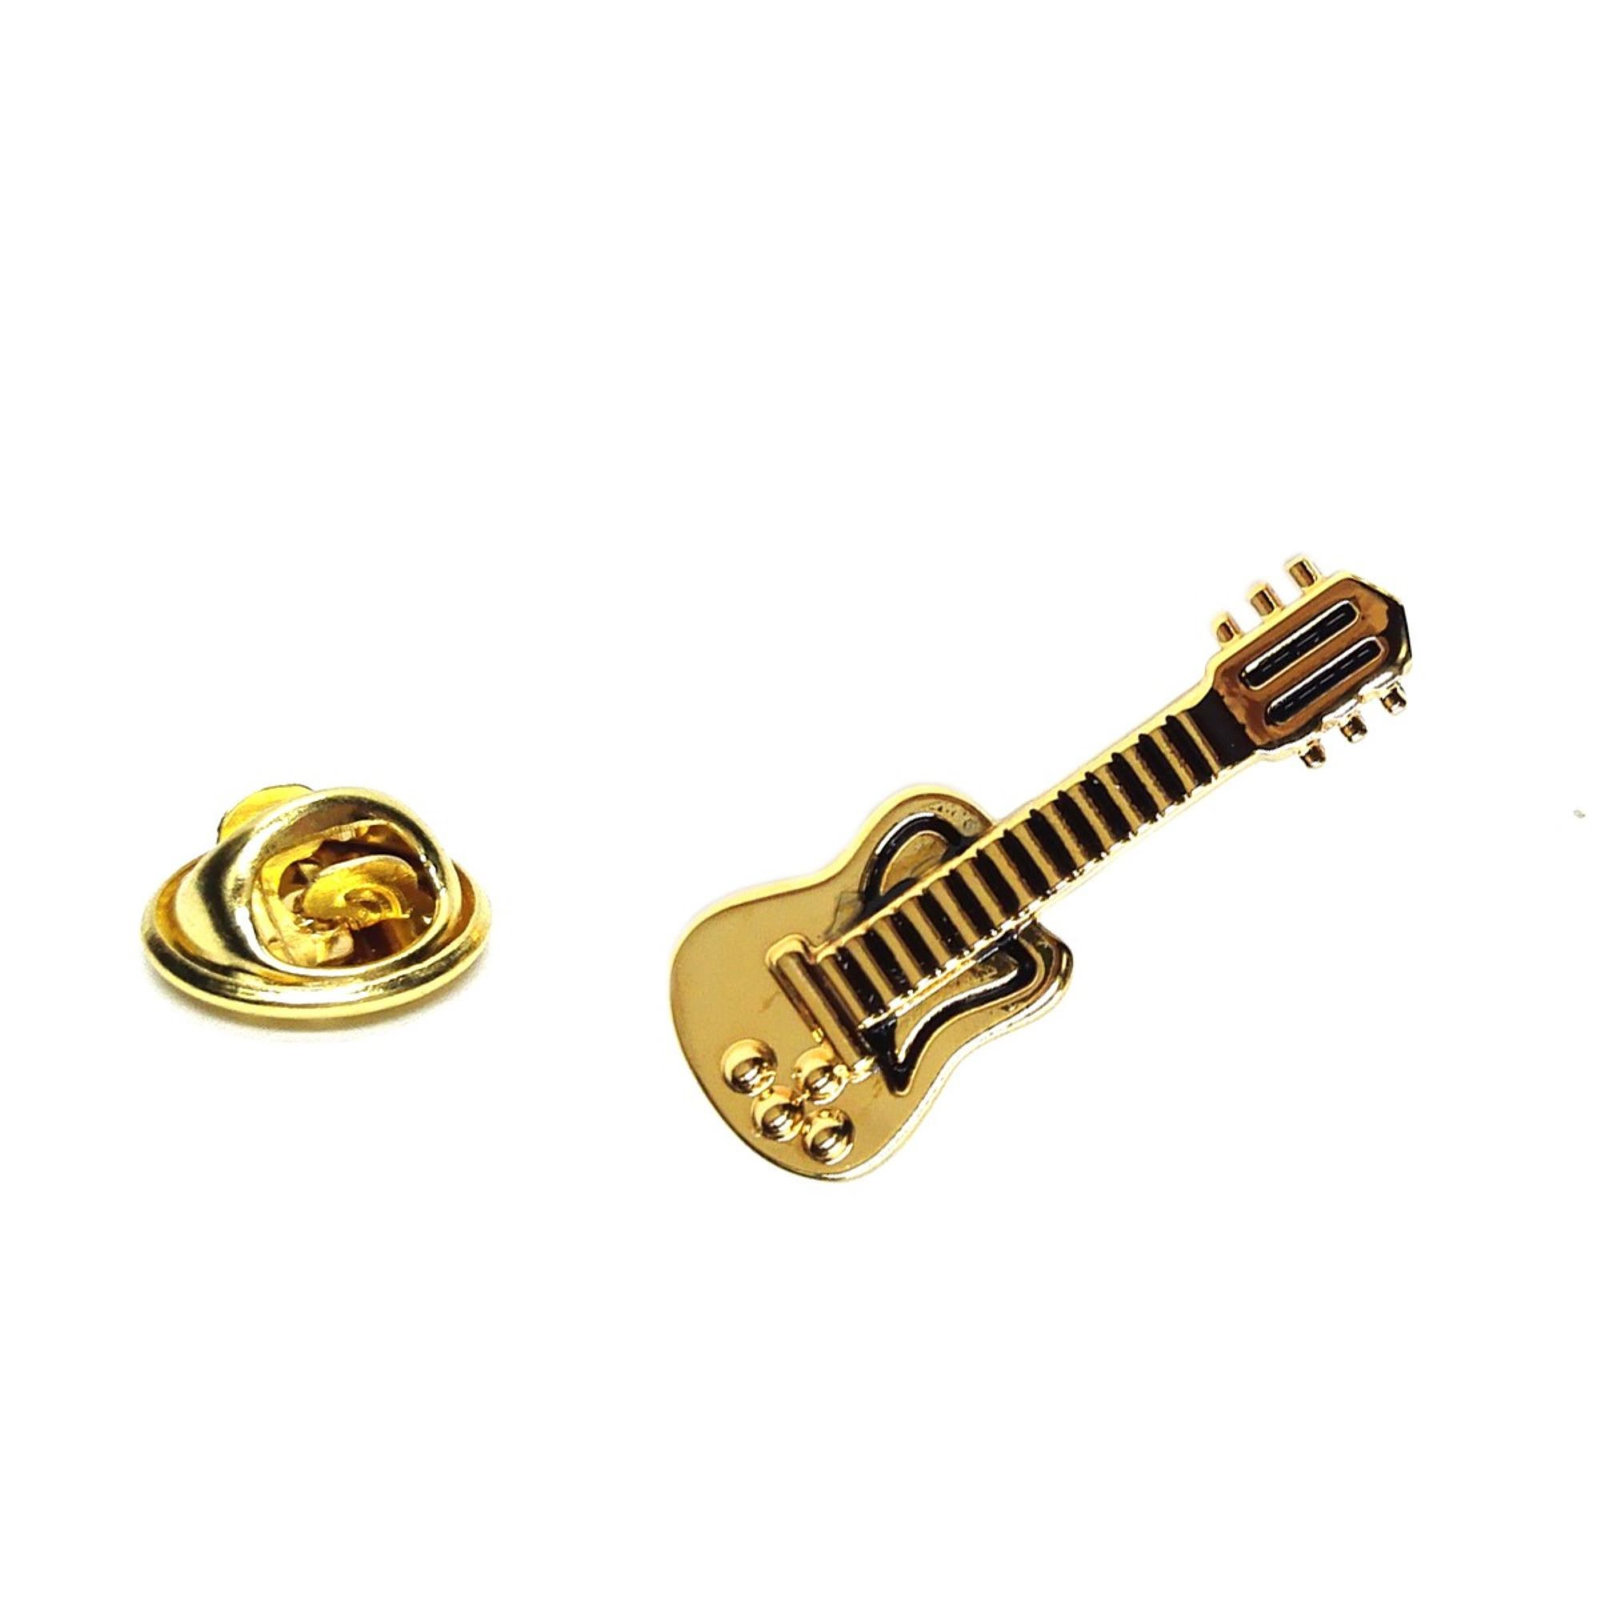 Golden Electric Guitar Electric Guitar  Design  / tie pin,lapel pin, badge in gi